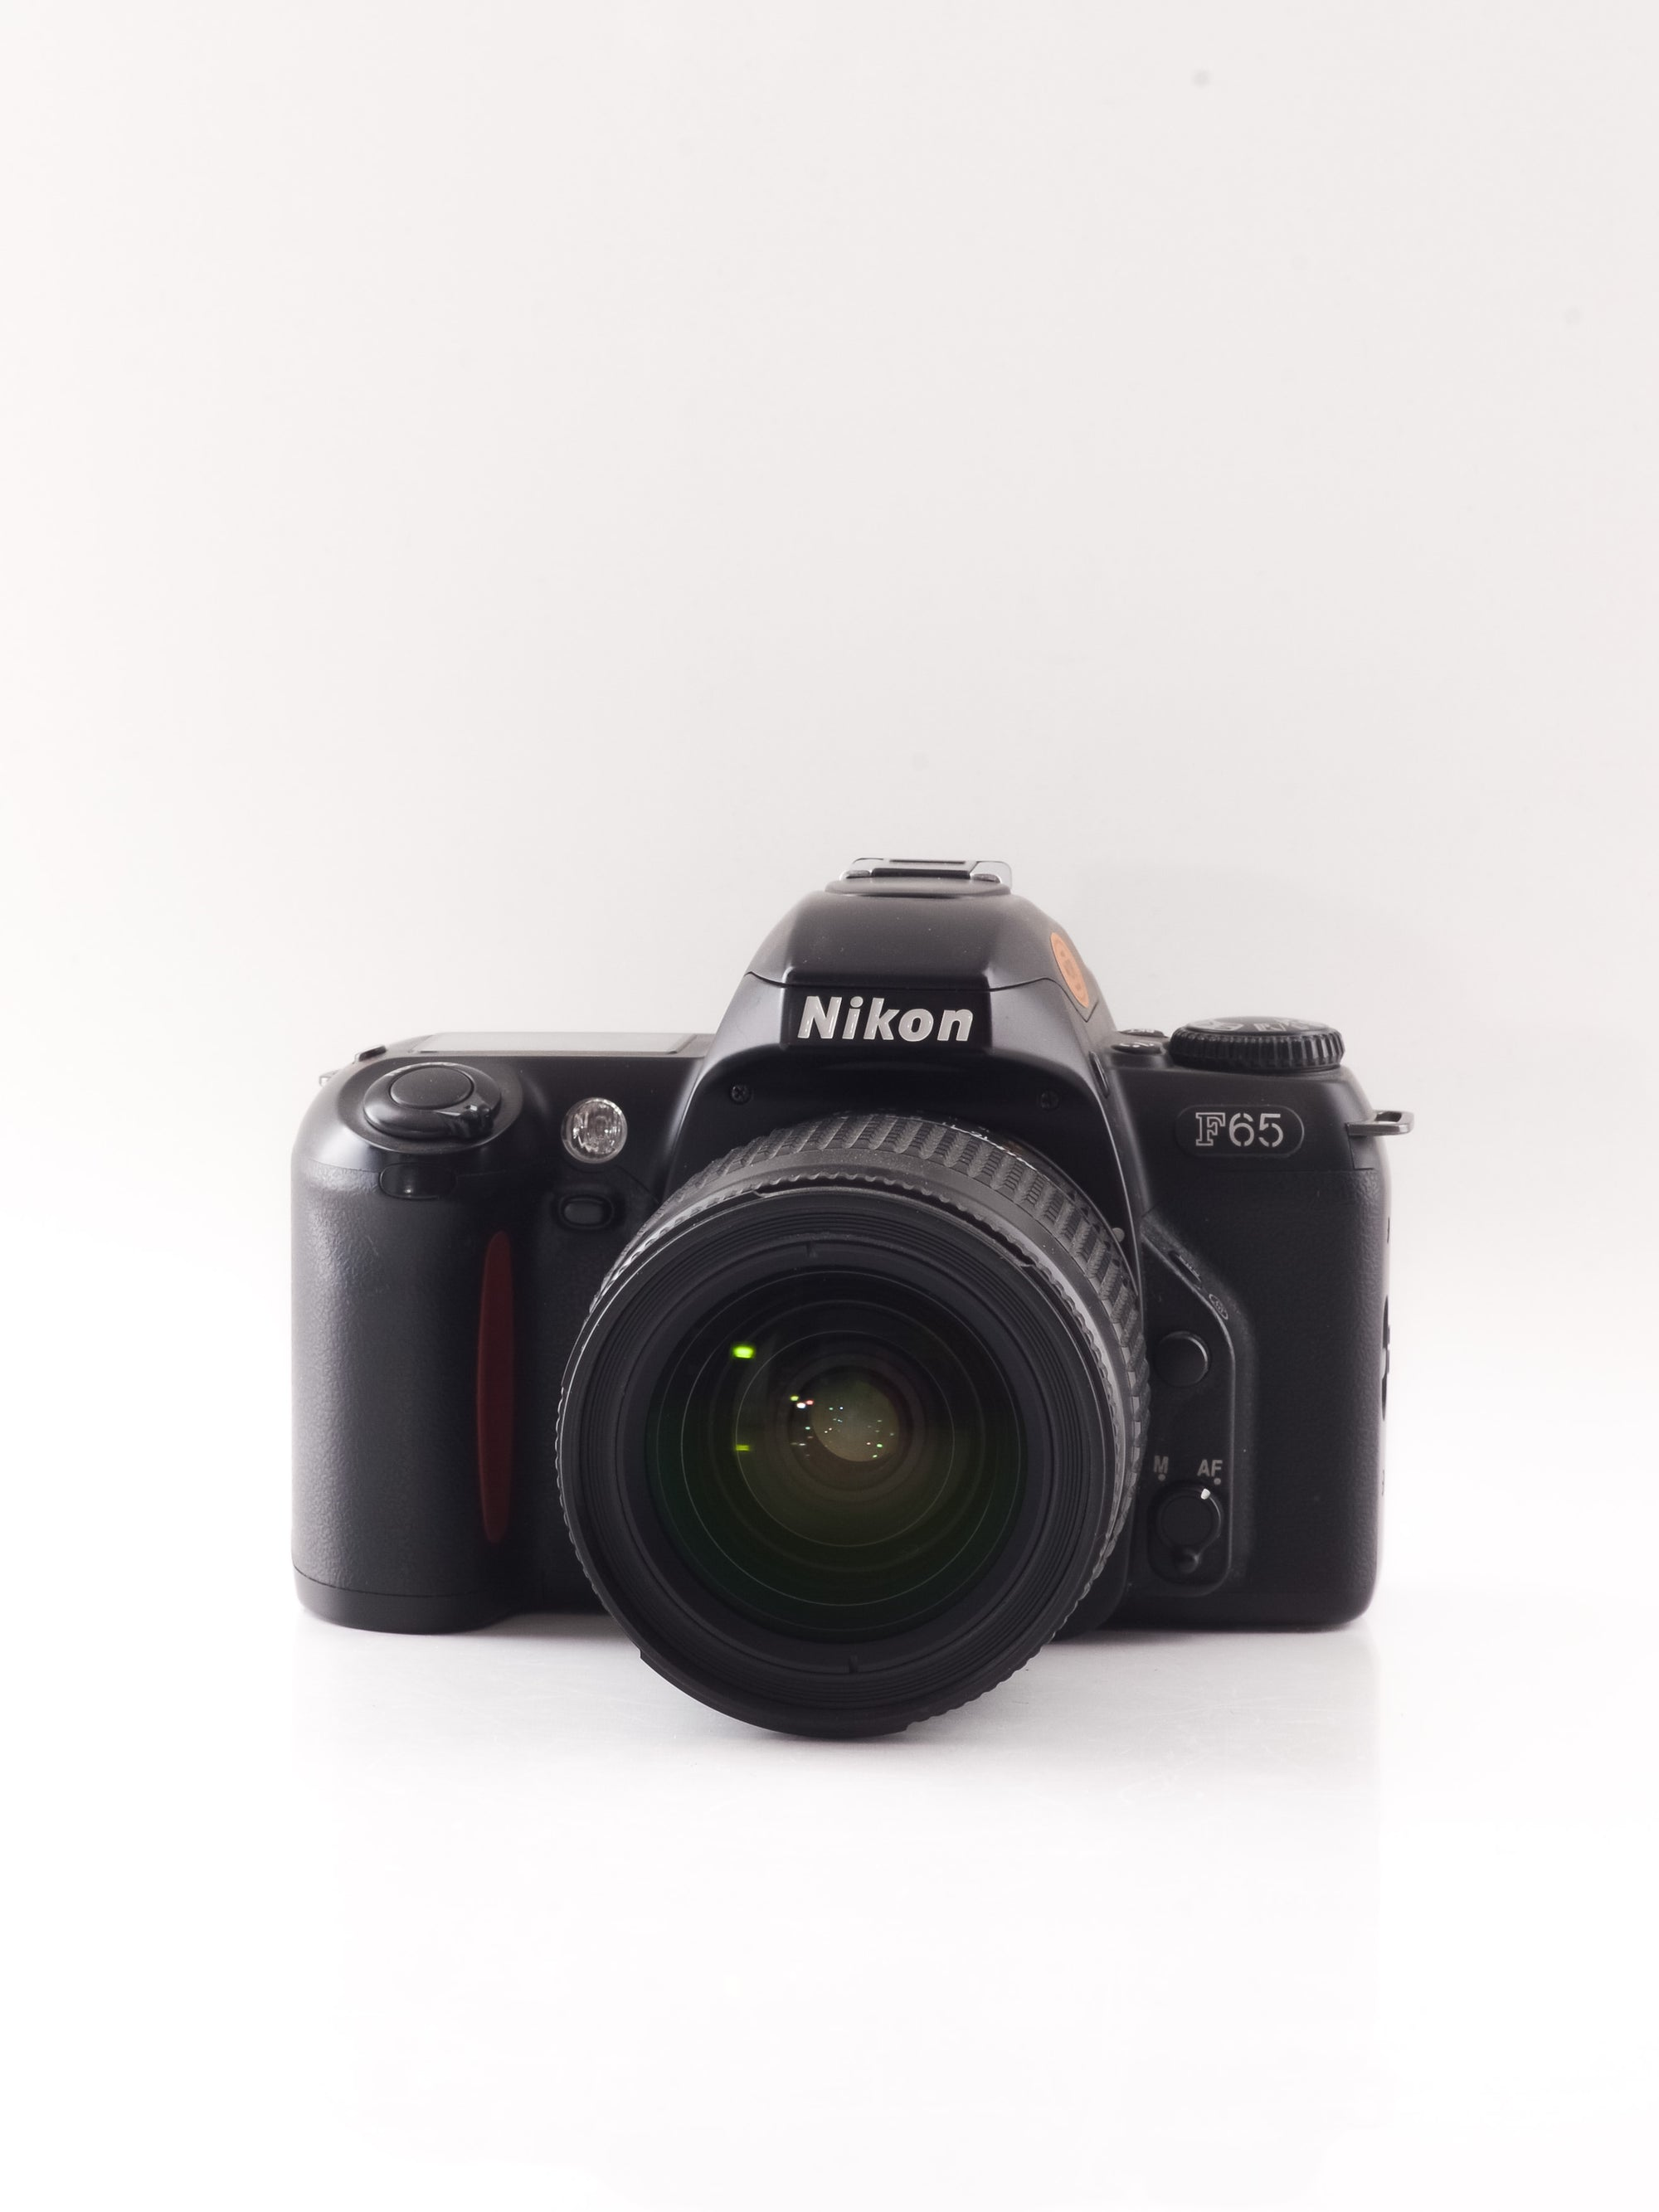 Nikon F65 35mm SLR film camera with 28-80mm lens